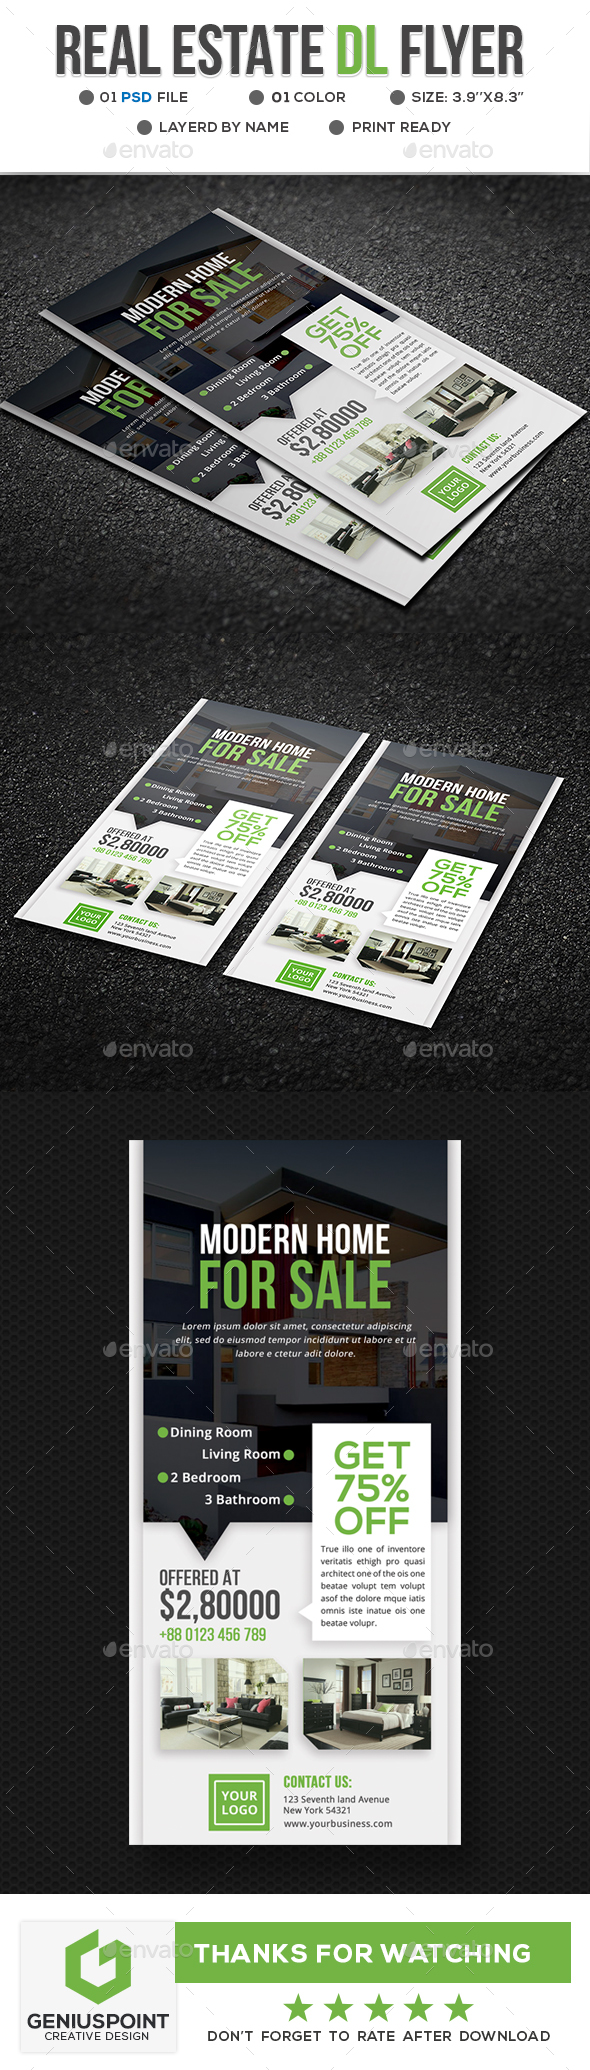 Real Estate Dl Flyer - Corporate Flyers